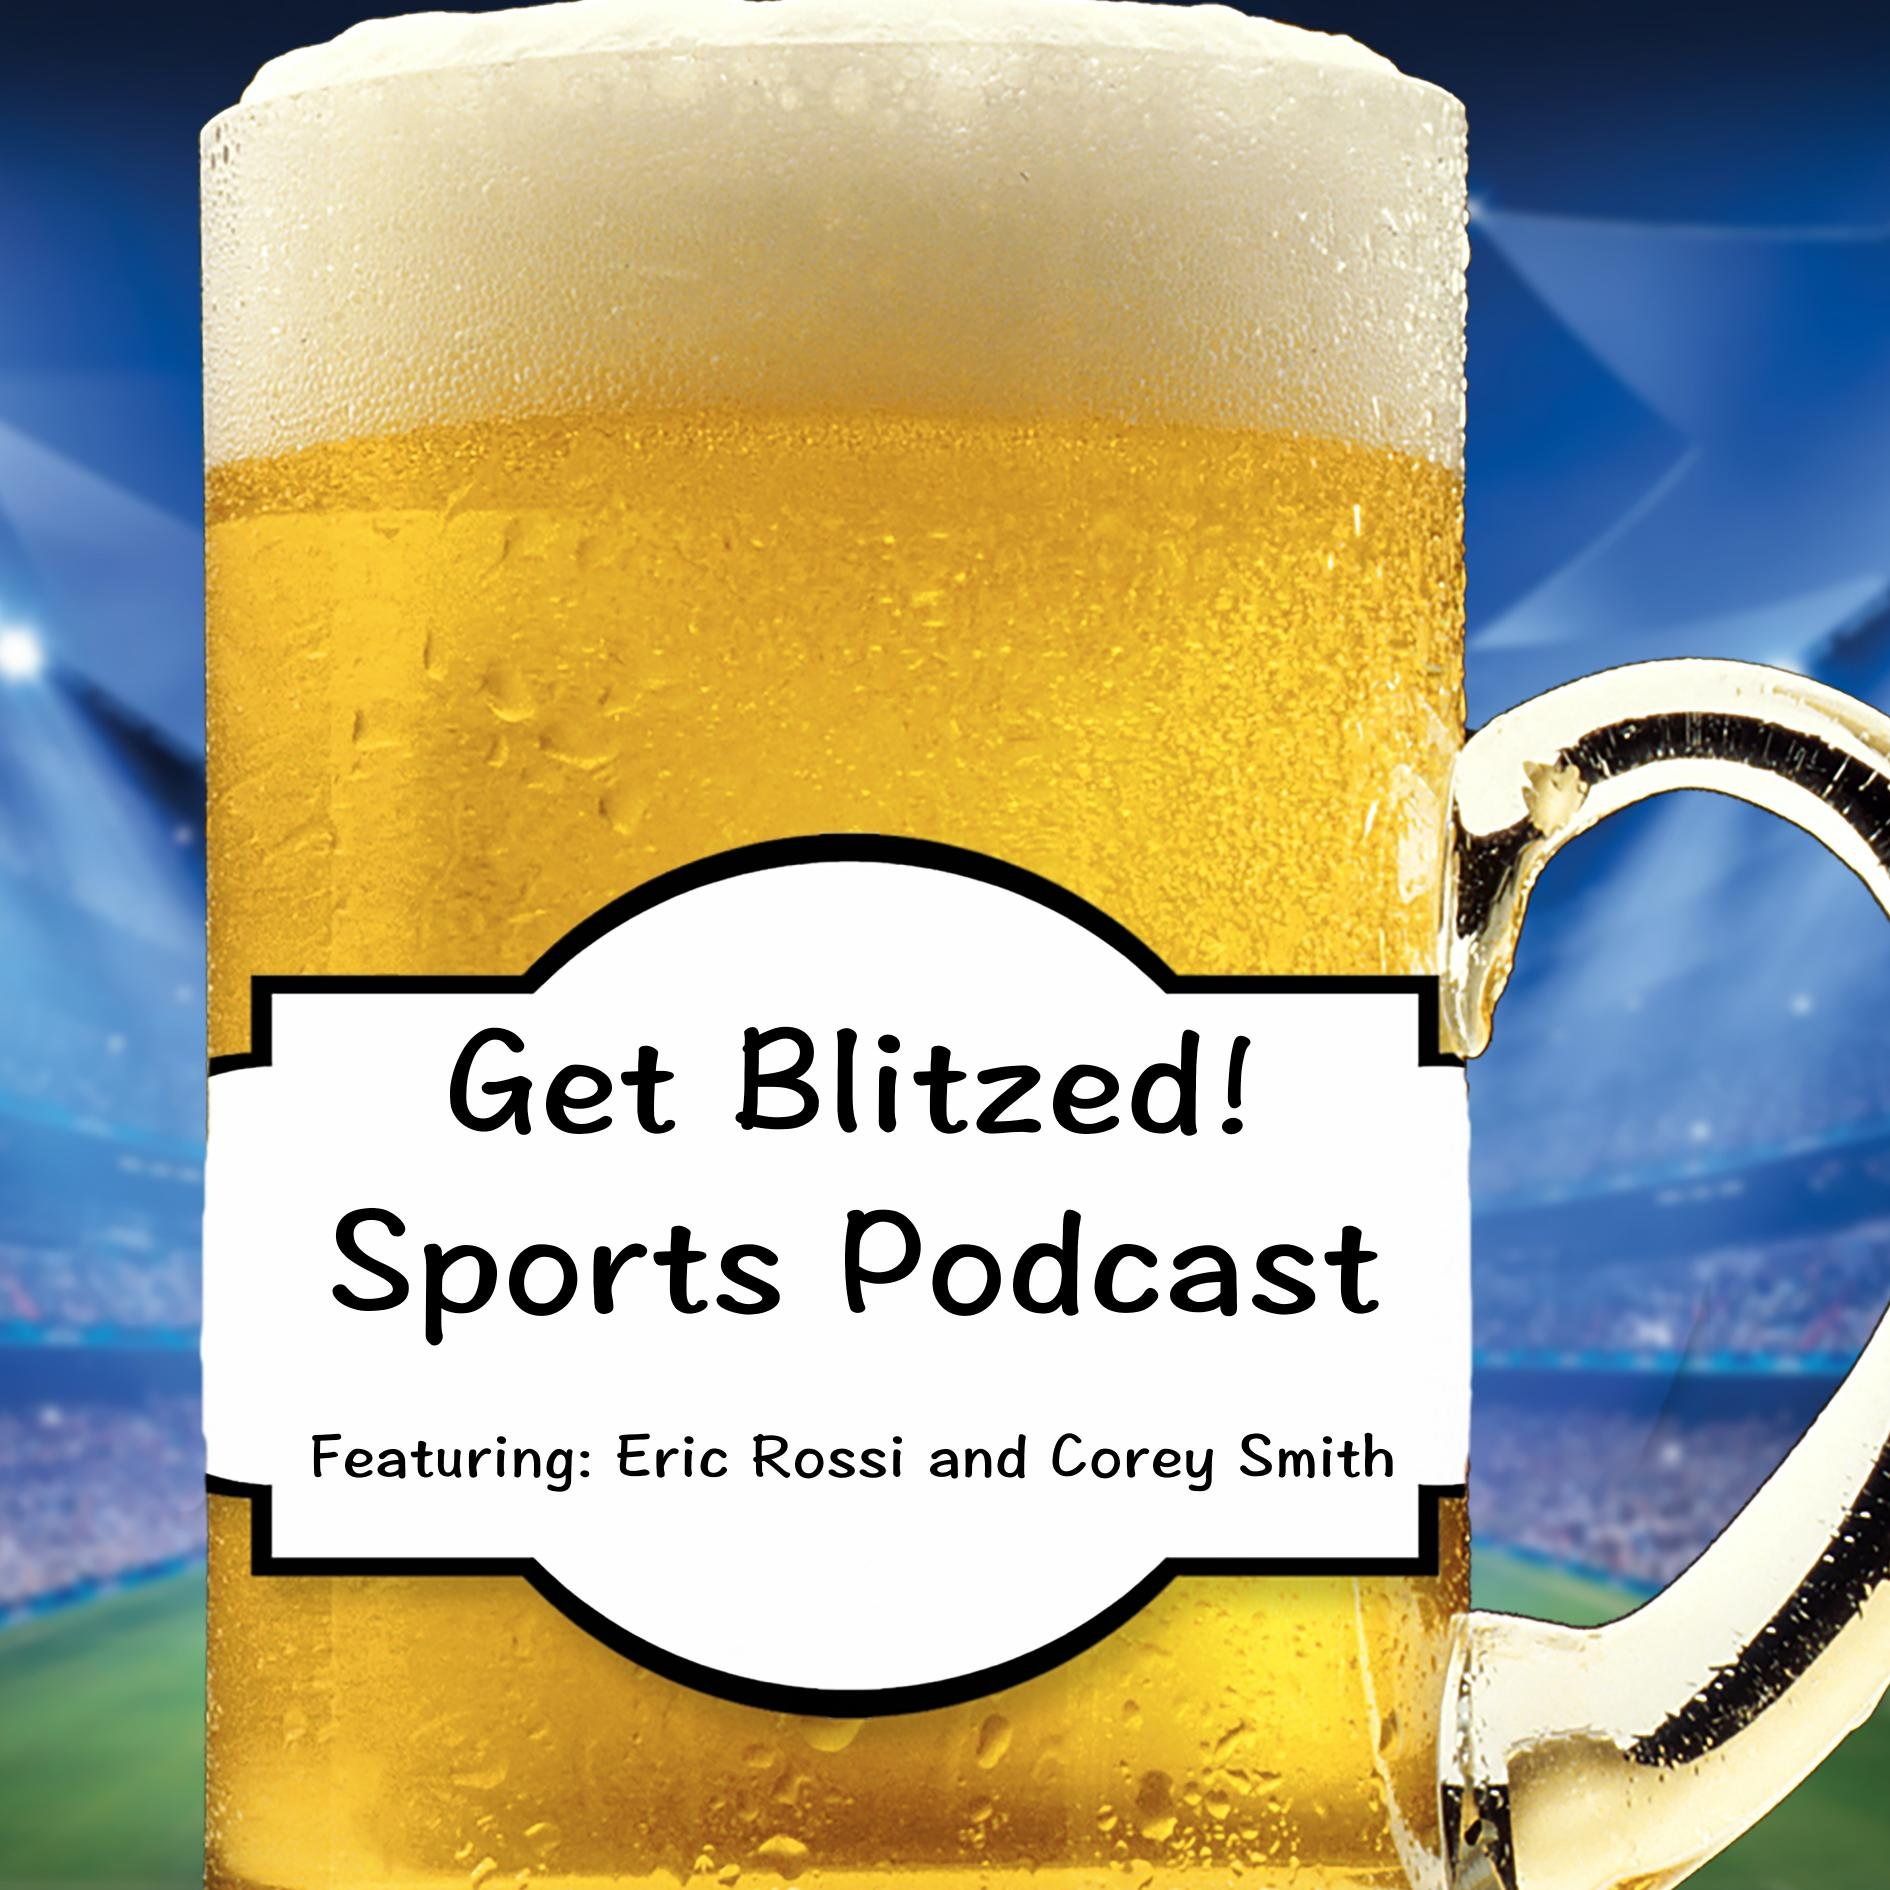 Get Blitzed Podcast